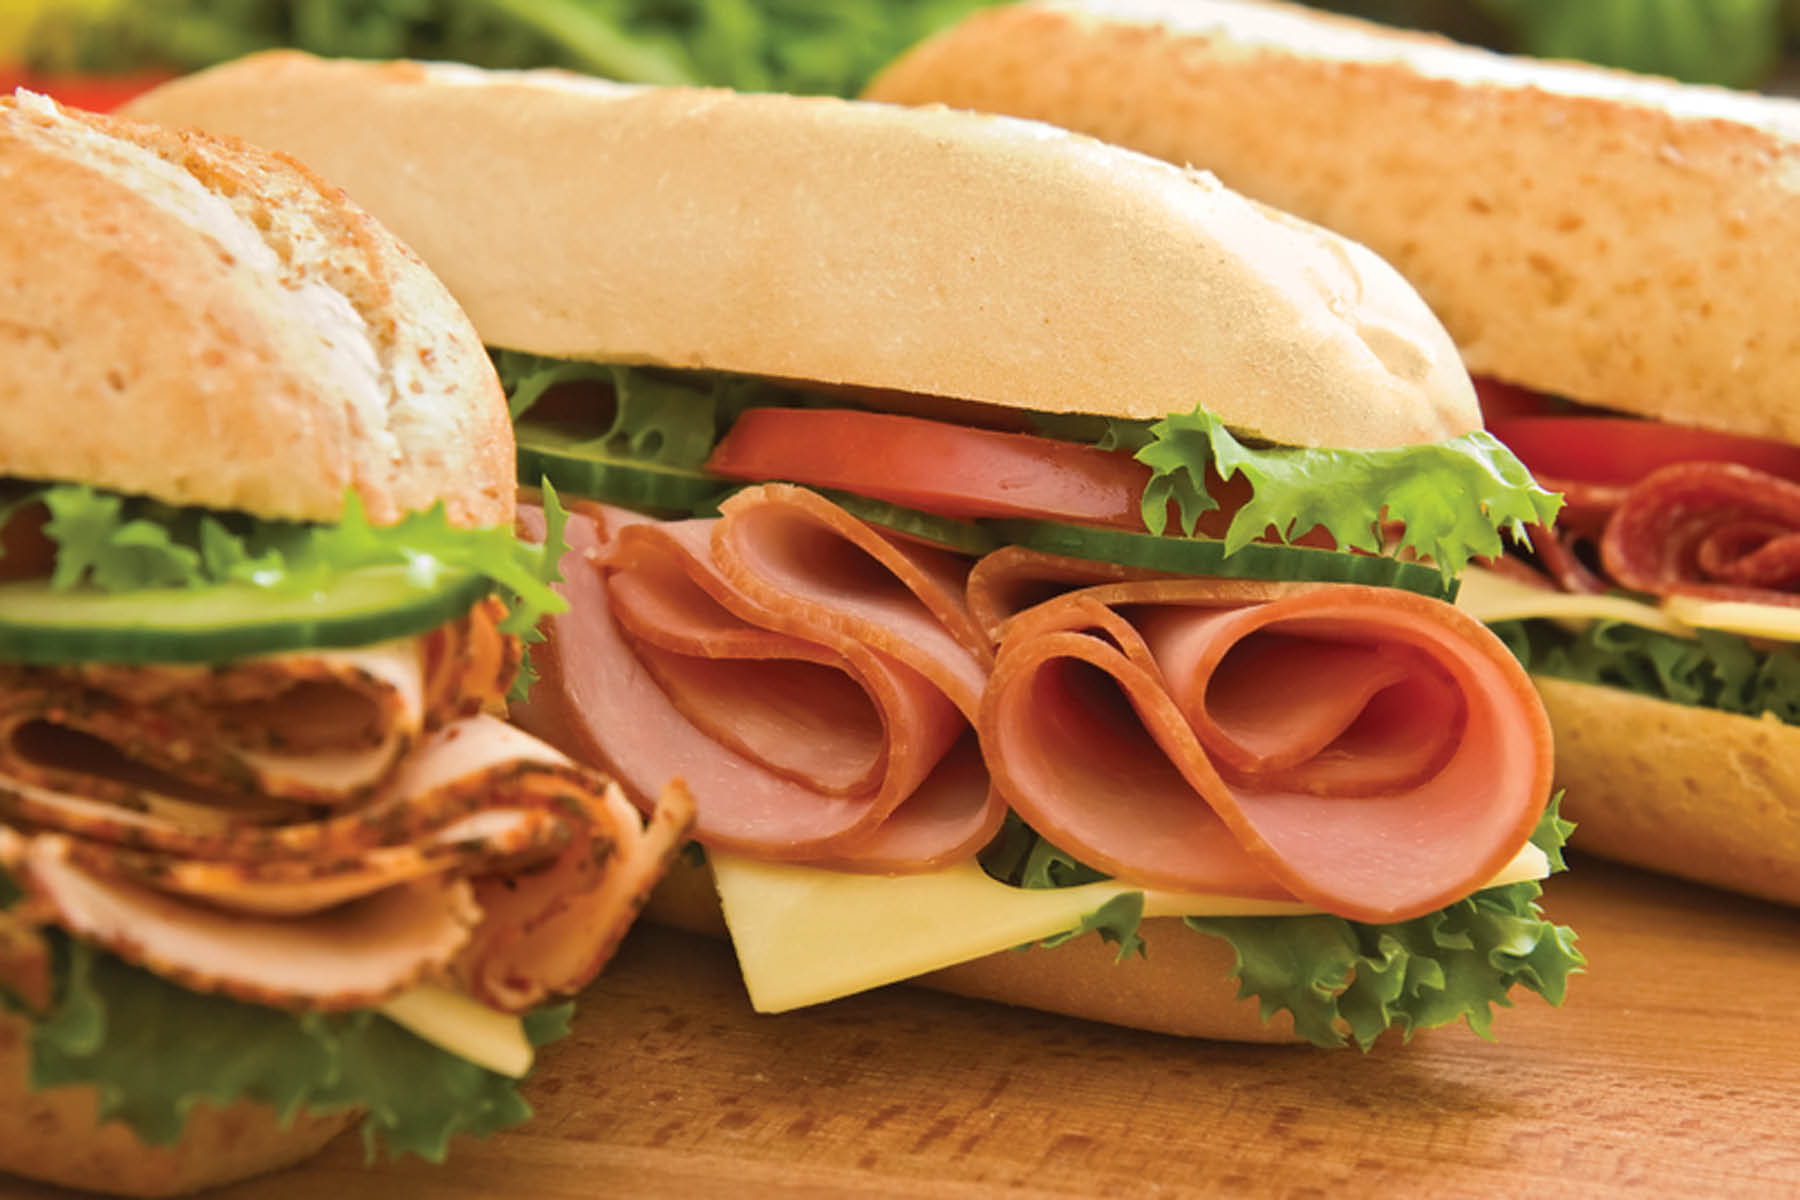 sub shops in la plata, maryland.  Sub Shop in Charlotte Hall, MD, Hot Subs, Made to Order Subs